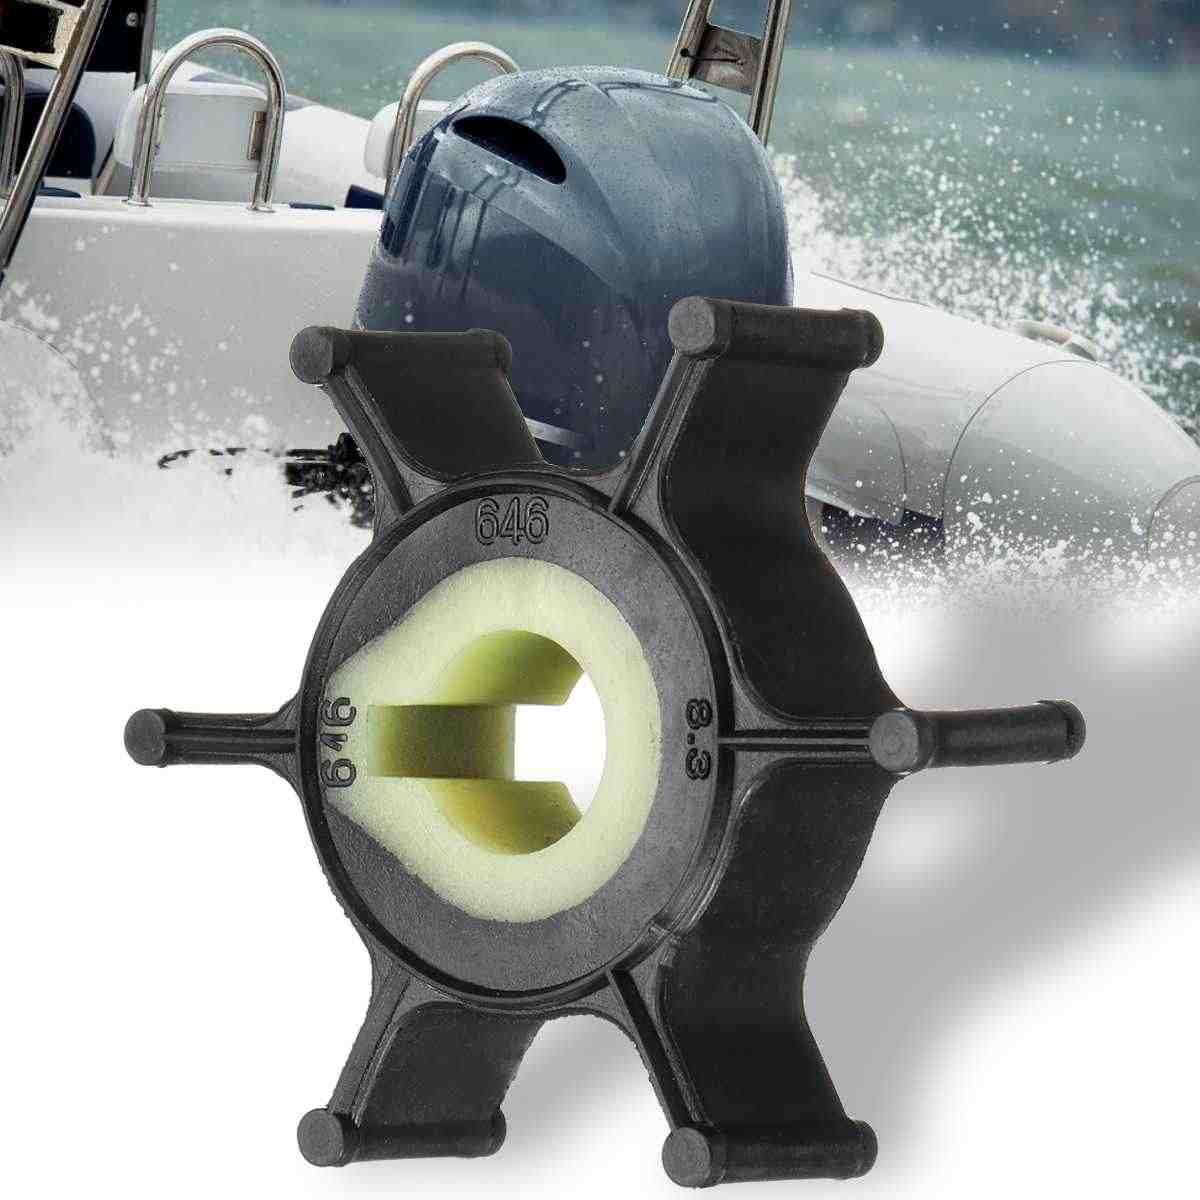 4 Pcs Trim Titl Switch Fit for Yamaha Outboard Remote